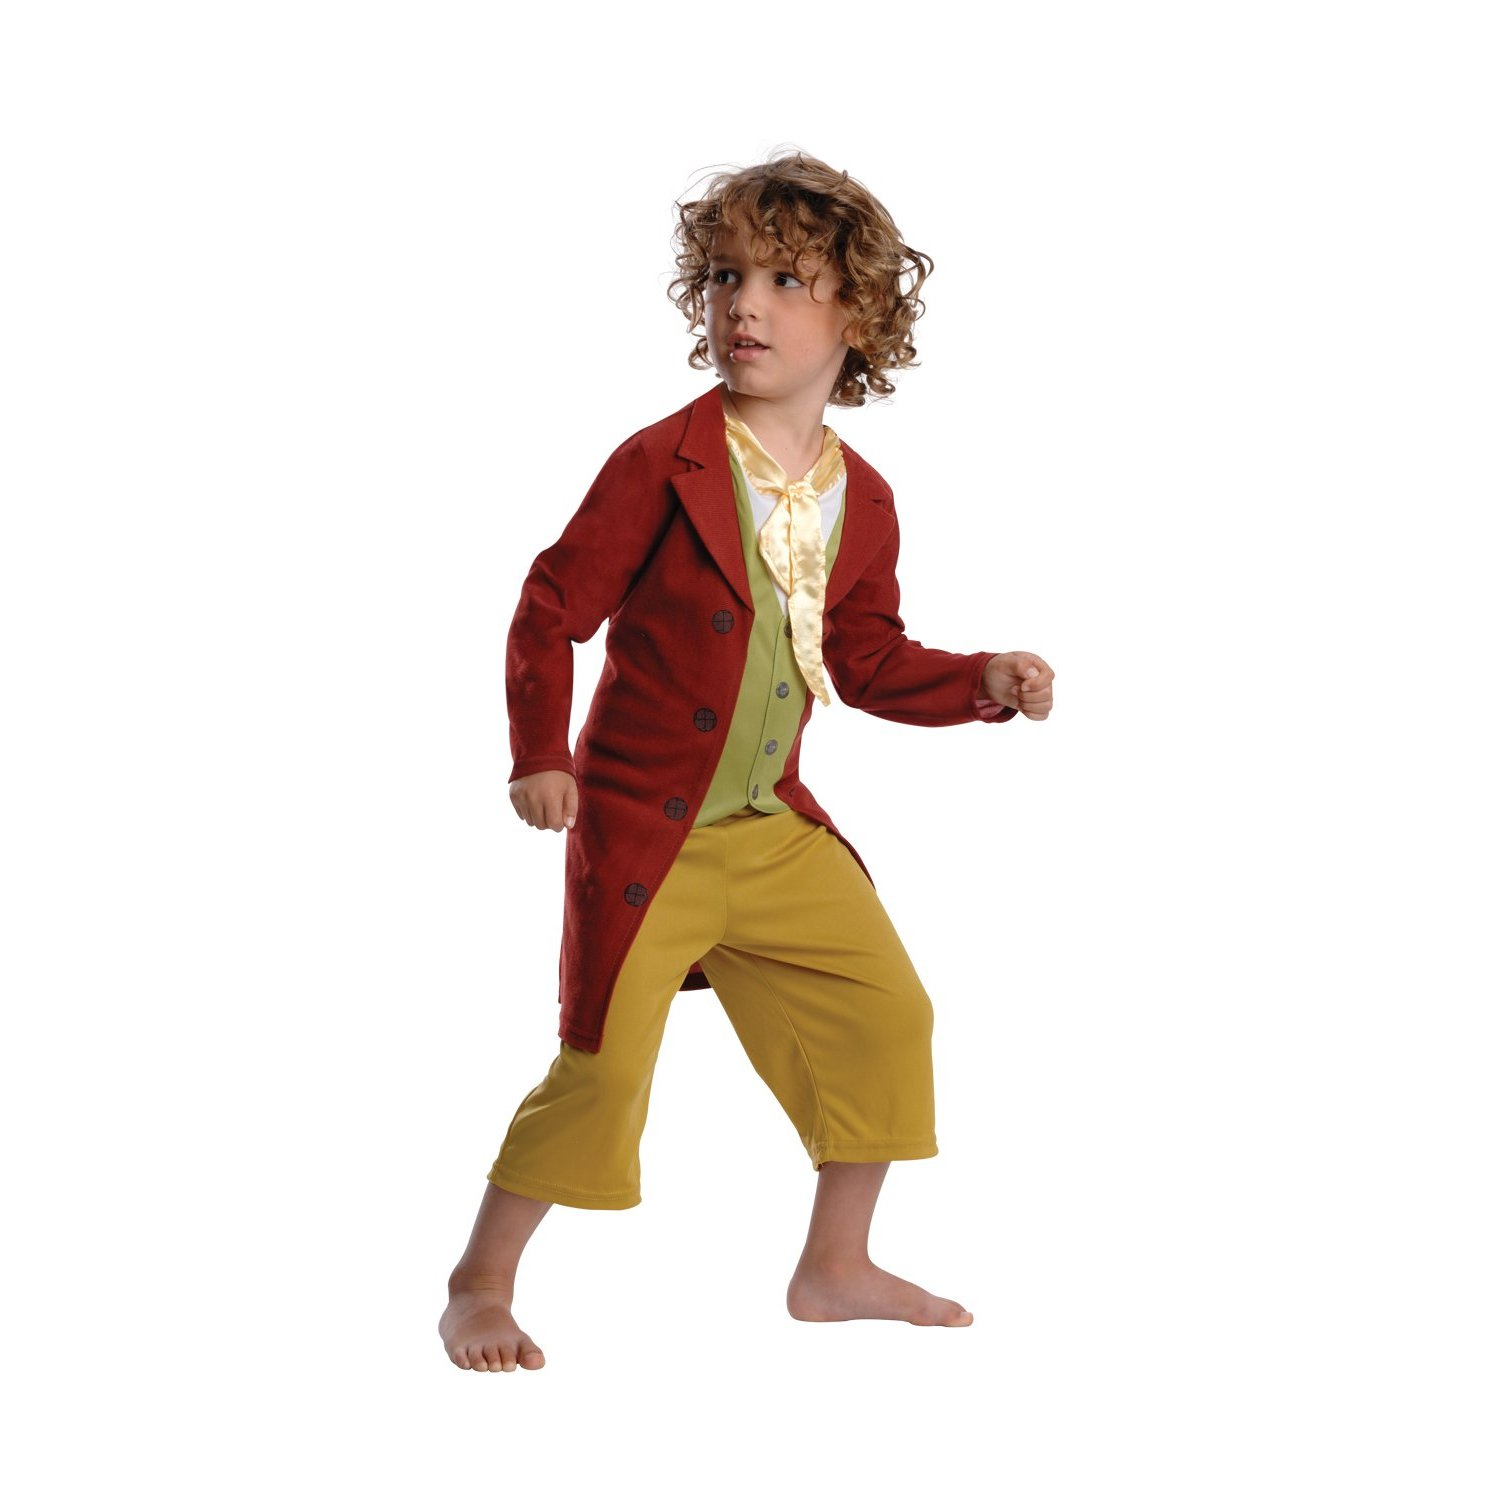 Bilbo Baggins, The Hobbit 882699